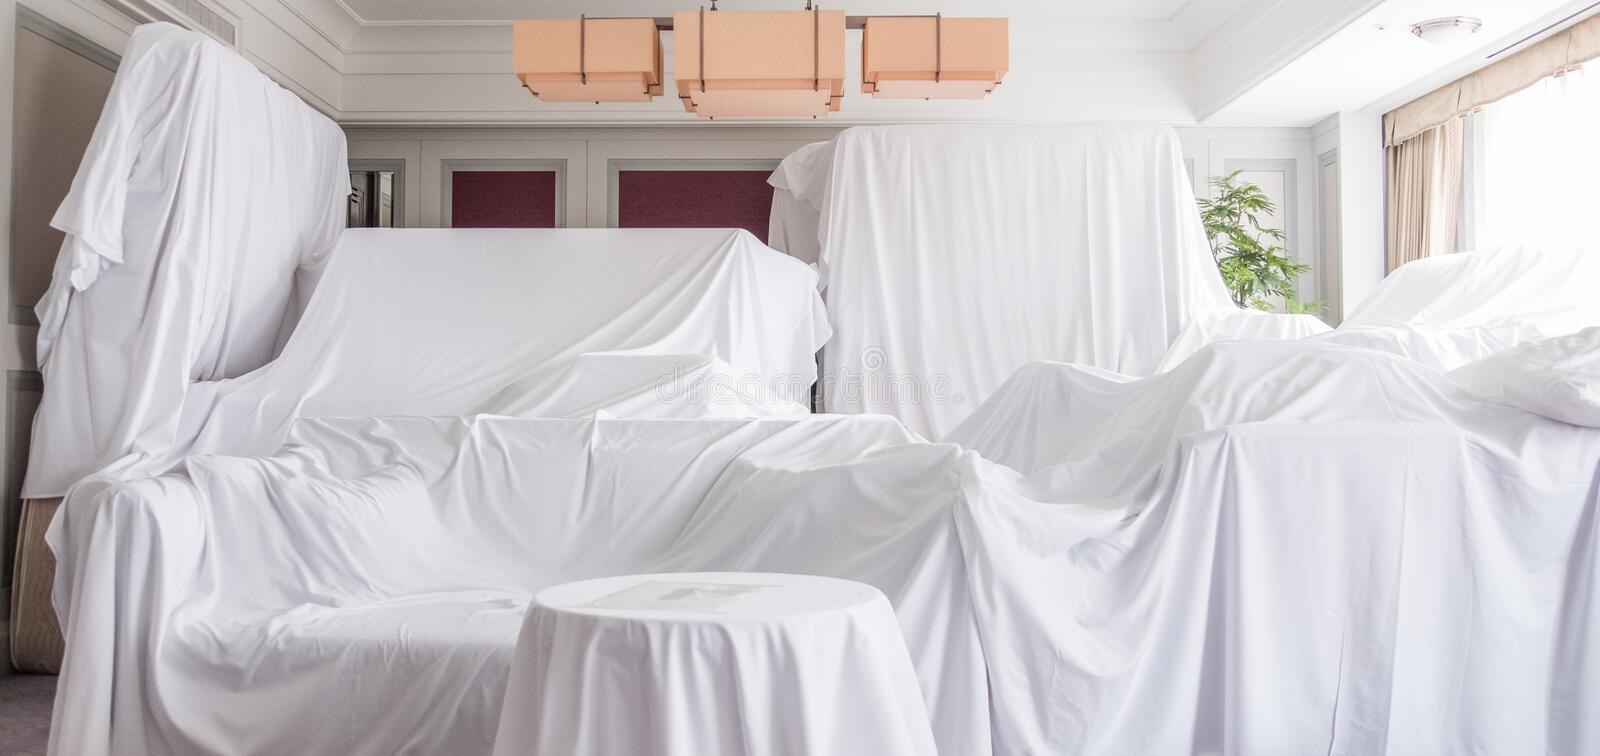 Furniture Dust Covers. White dust cover cloth covering furnitures in a room royalty free stock photography